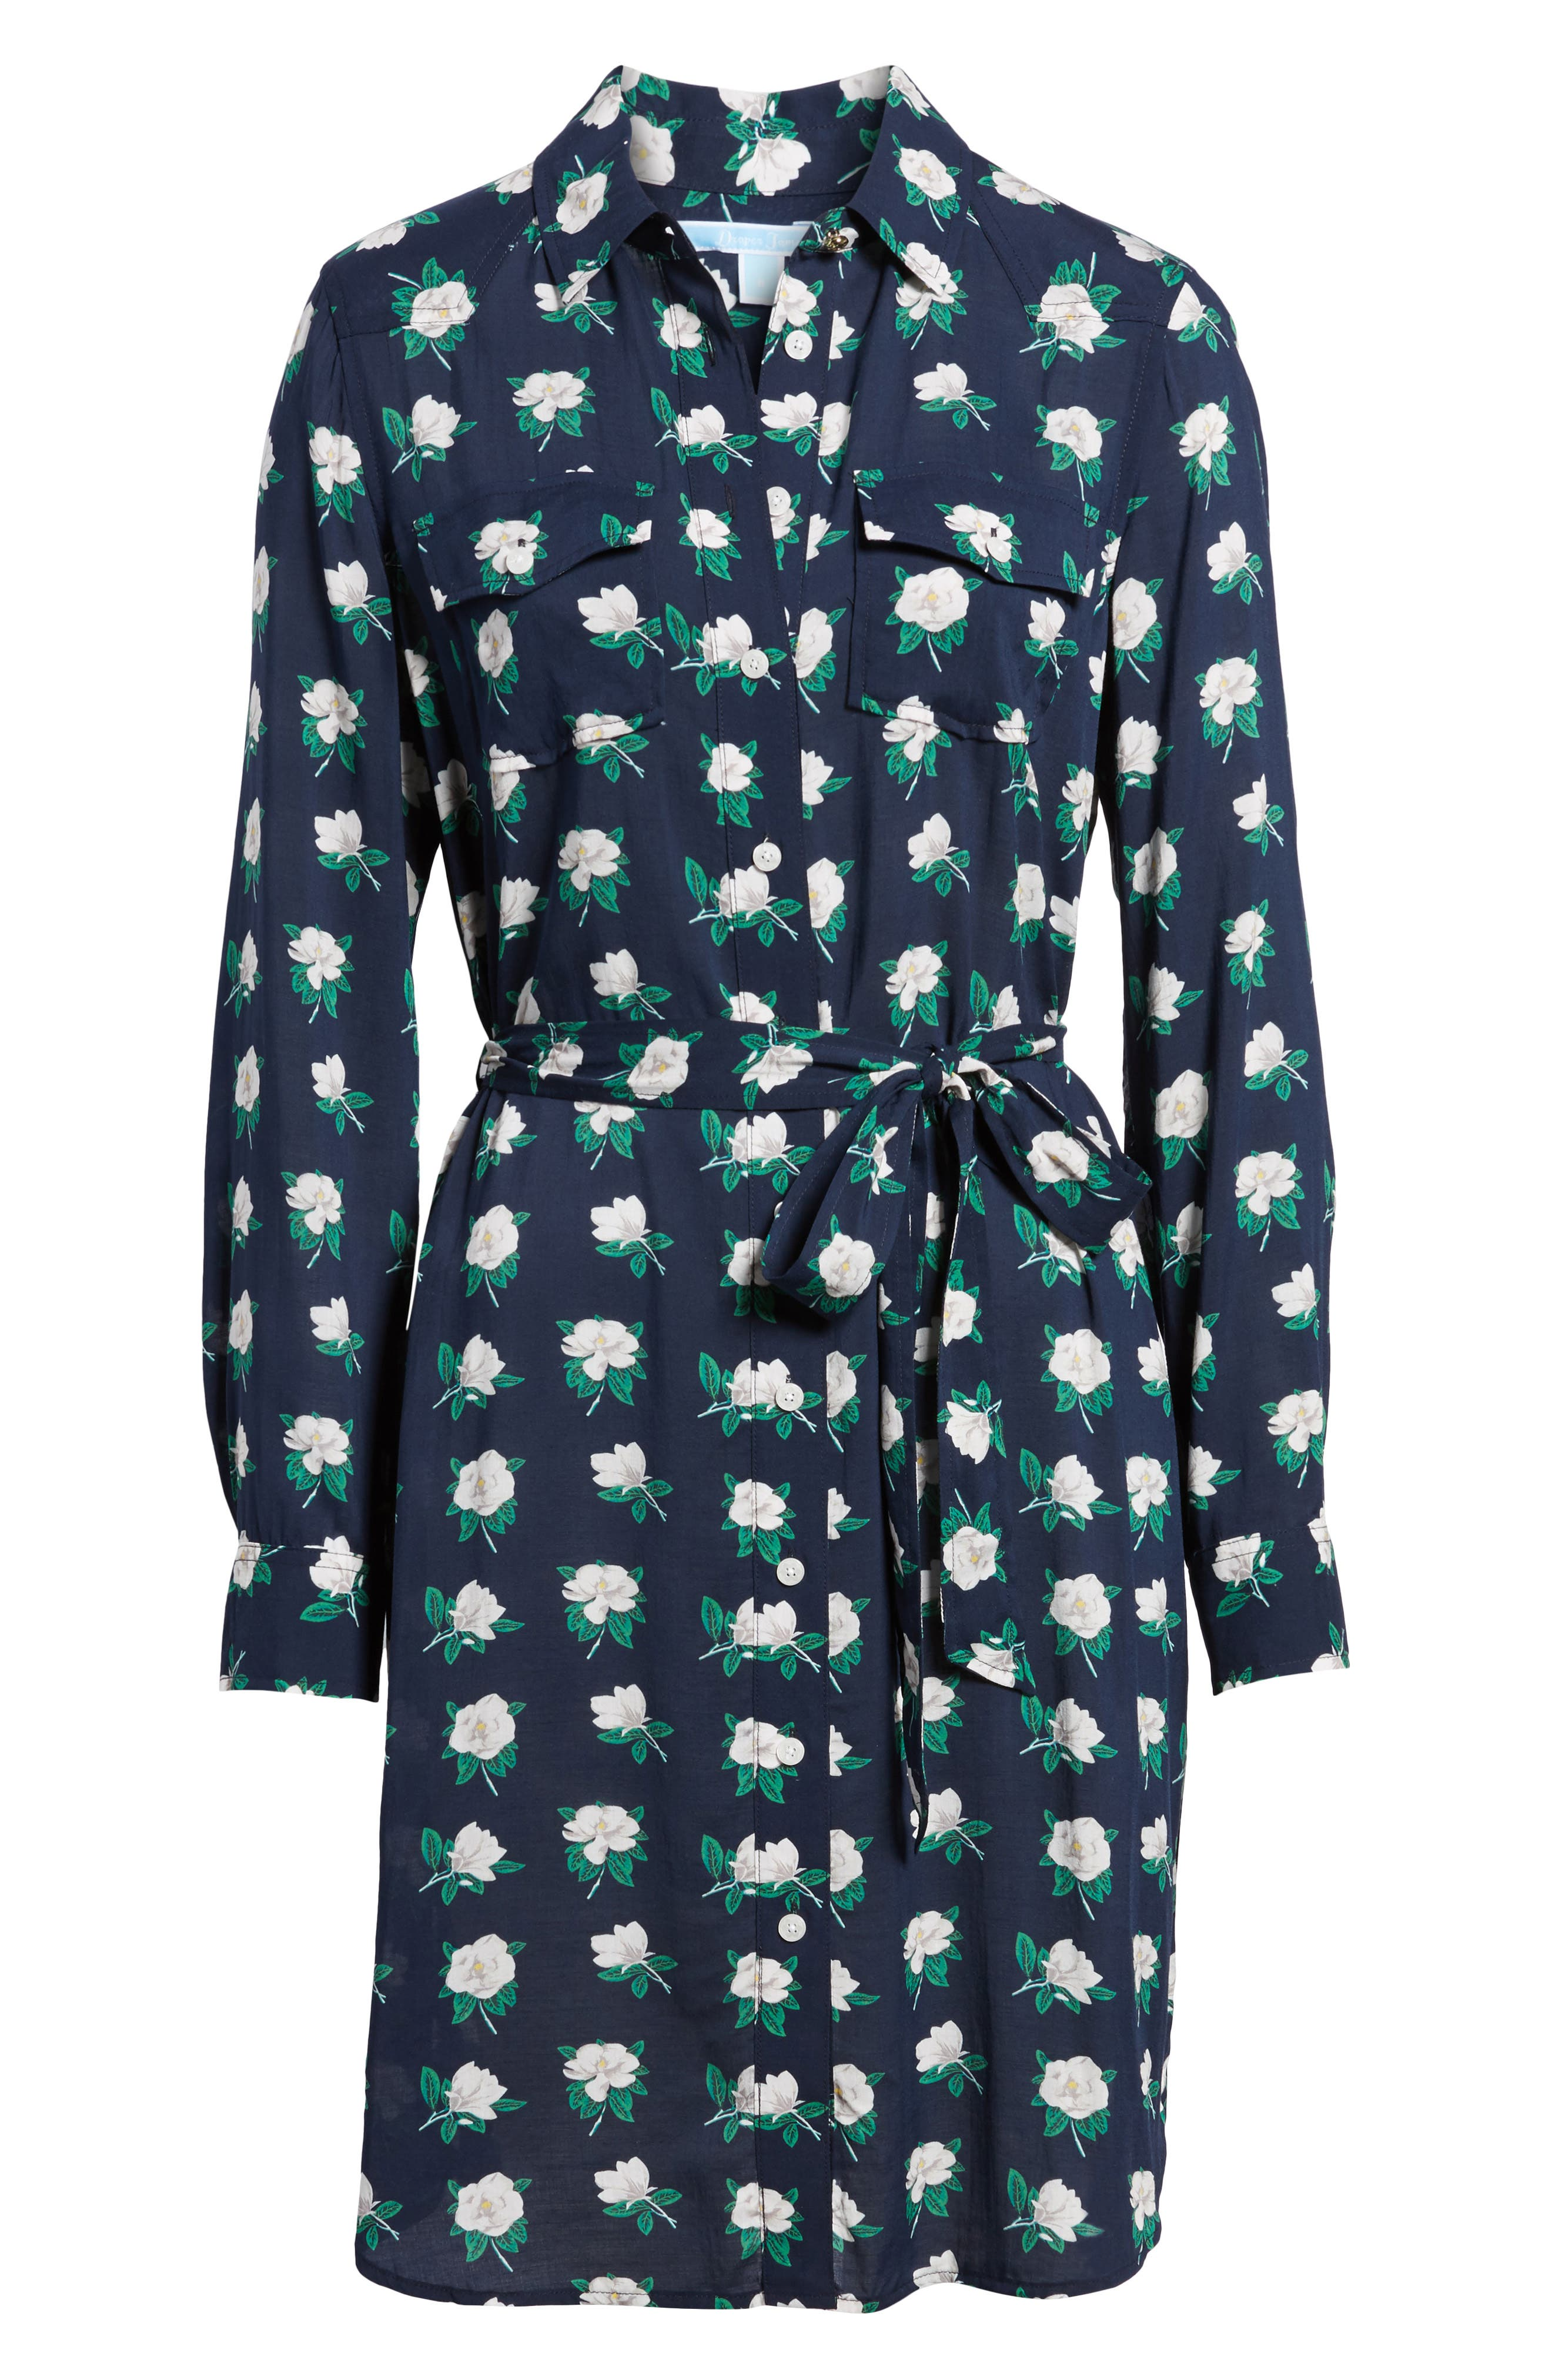 Magnolia Casual Belted Shirtdress,                             Alternate thumbnail 6, color,                             Magnolia Navy